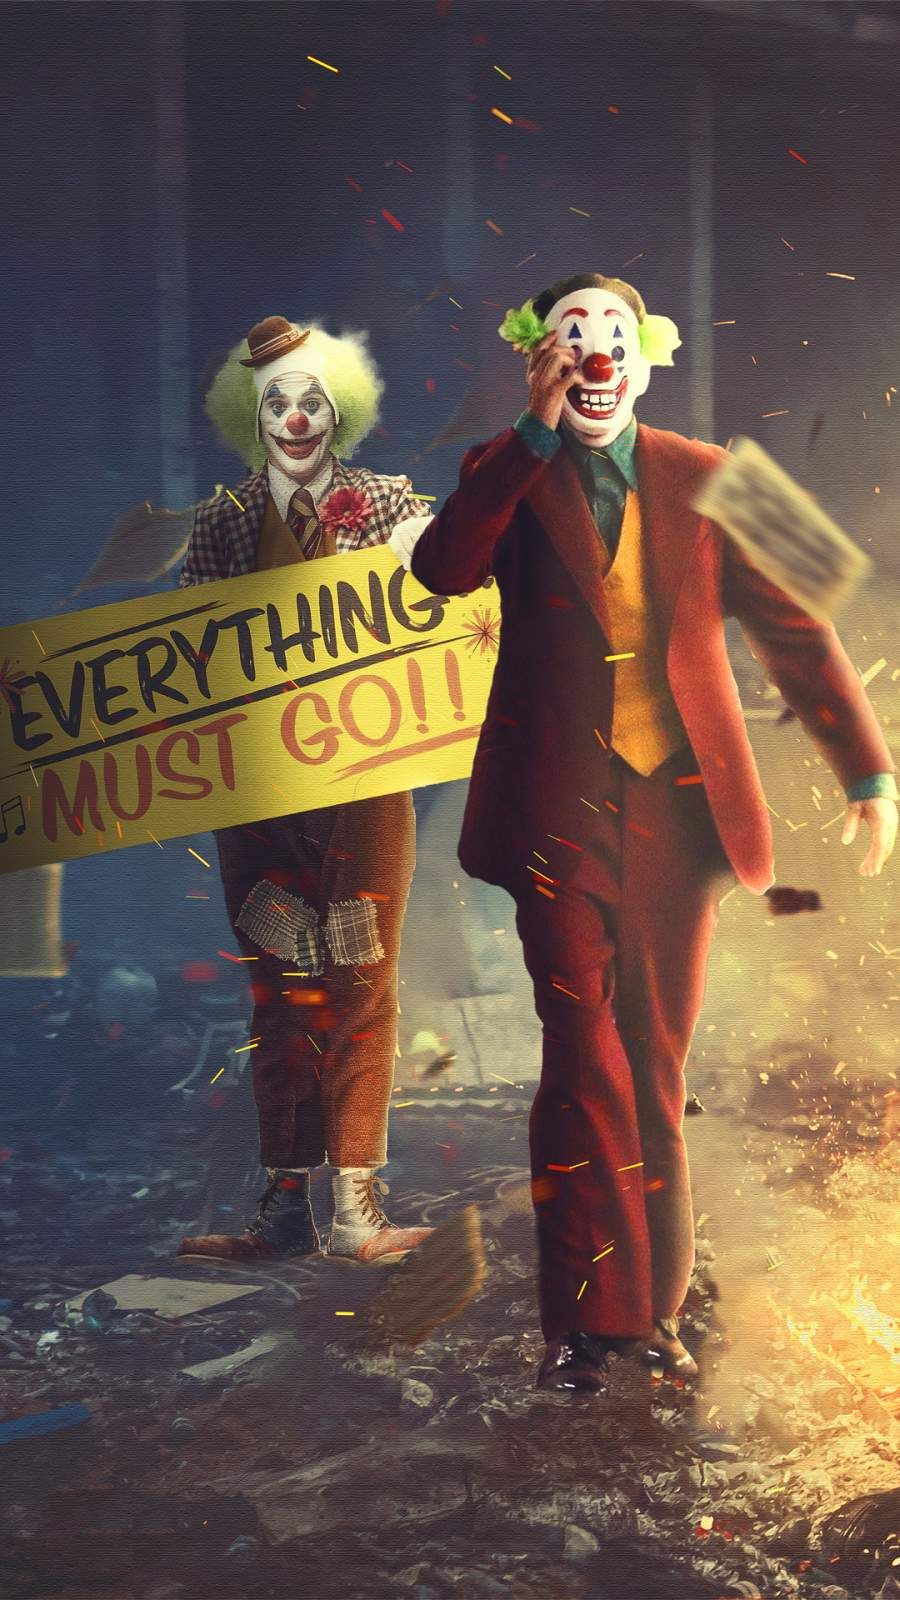 Joker Clowns Everything Must Go Iphone Wallpaper Joker Hd